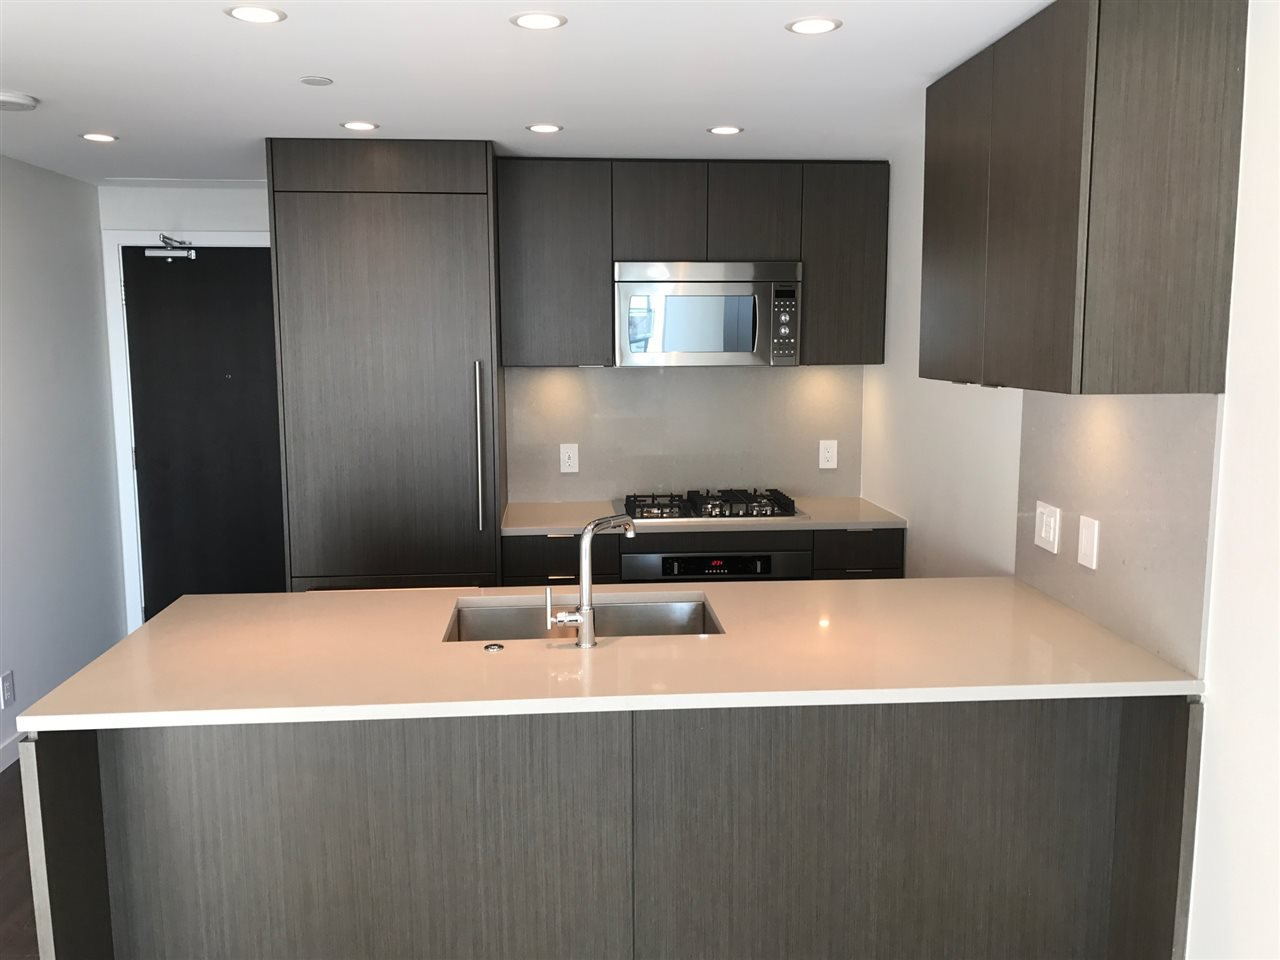 Photo 15: Photos: 112 E.13th Street in North Vancouver: Central Lonsdale Condo for rent